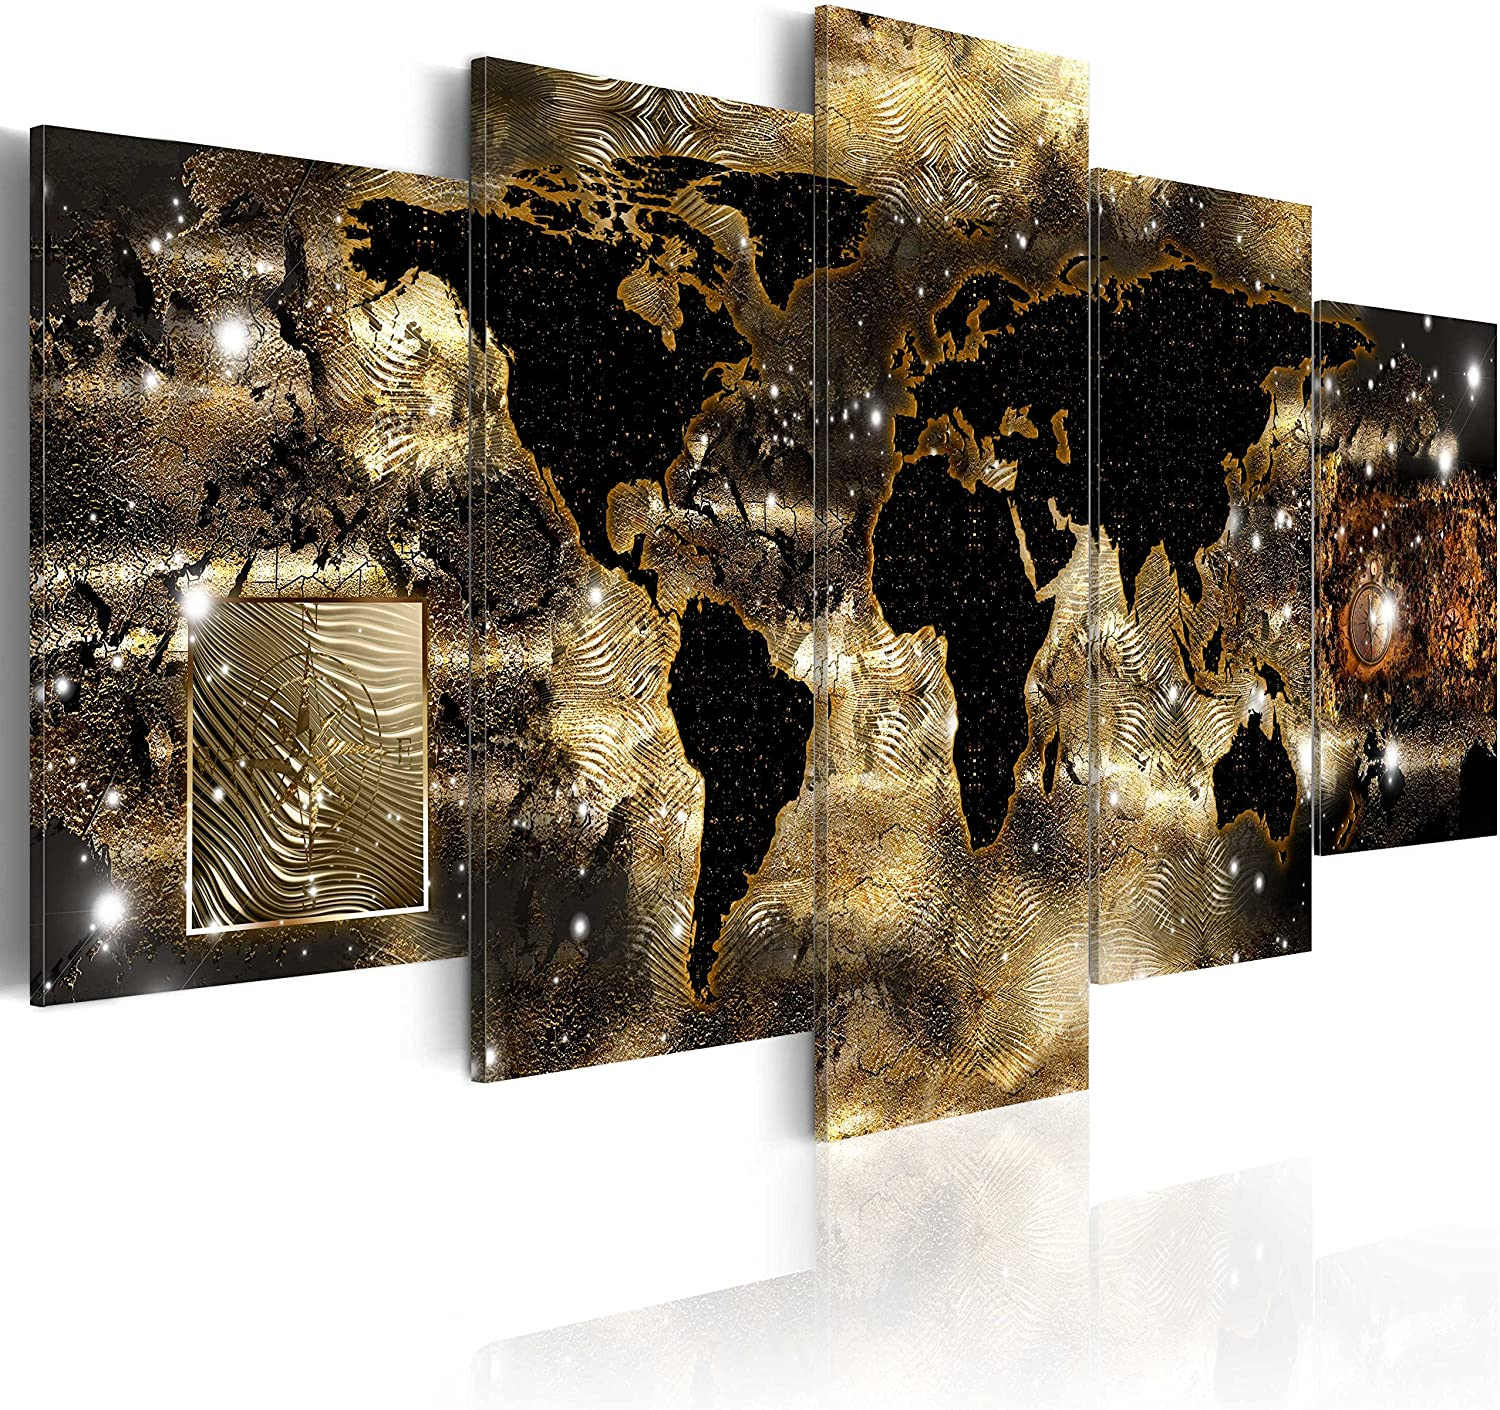 World Map Canvas Wall Art Large Gold Compass Picture Modern Painting Continents of Bronze Artwork Framed Home Decor for Bedroom 5 Panel Ready to Hang 60x30 inch